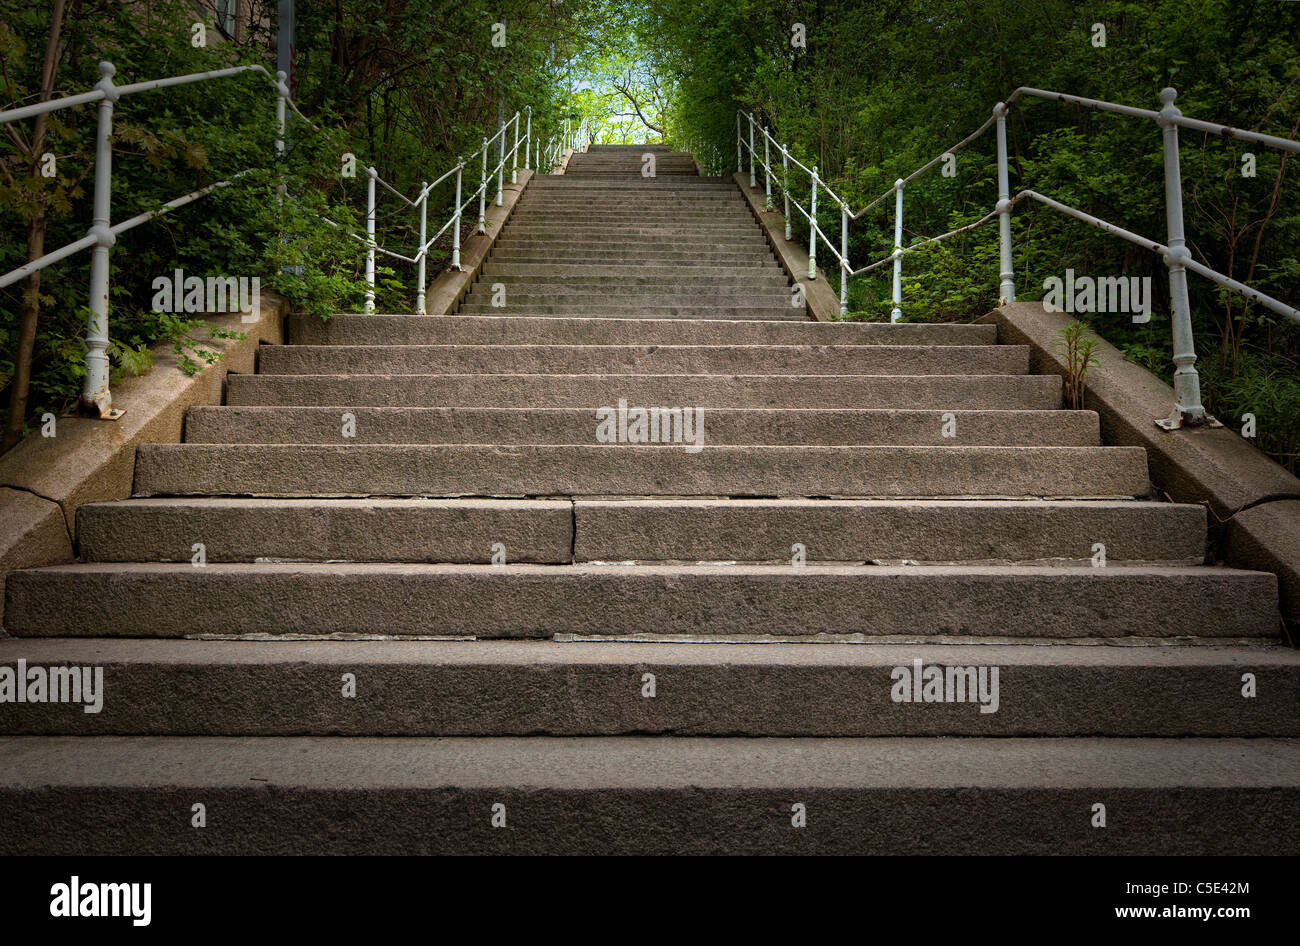 Close-up of outdoor long stone stairways along trees - Stock Image